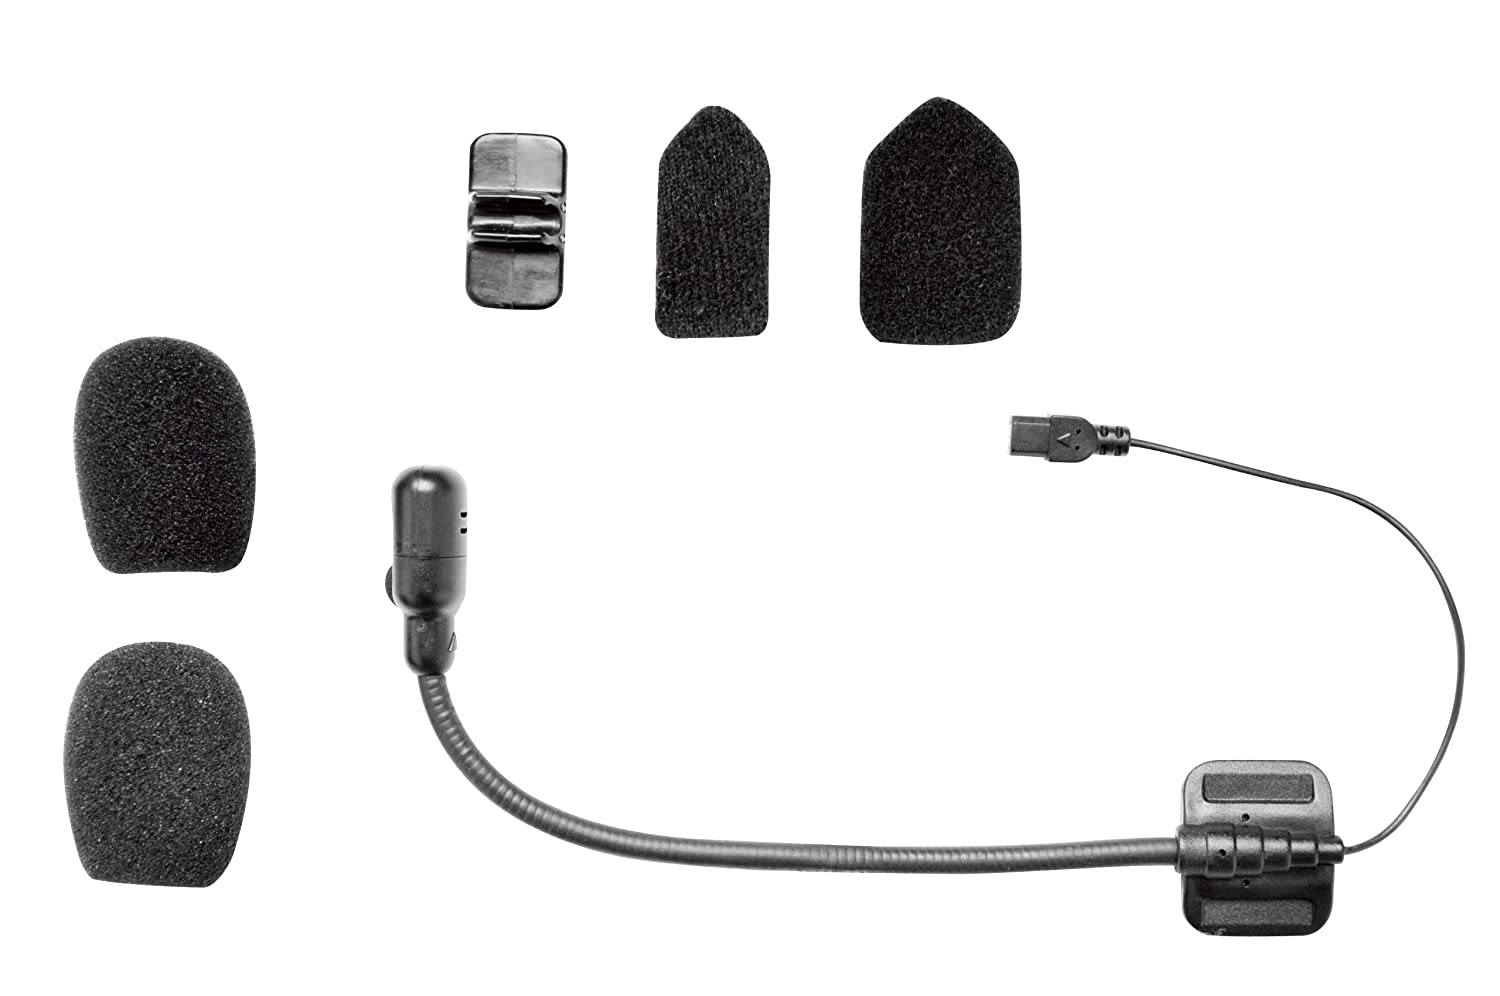 Sena SMH5-A0303 Replacement Boom Microphone for SMH5 Bluetooth Headset Benchmark Helmets